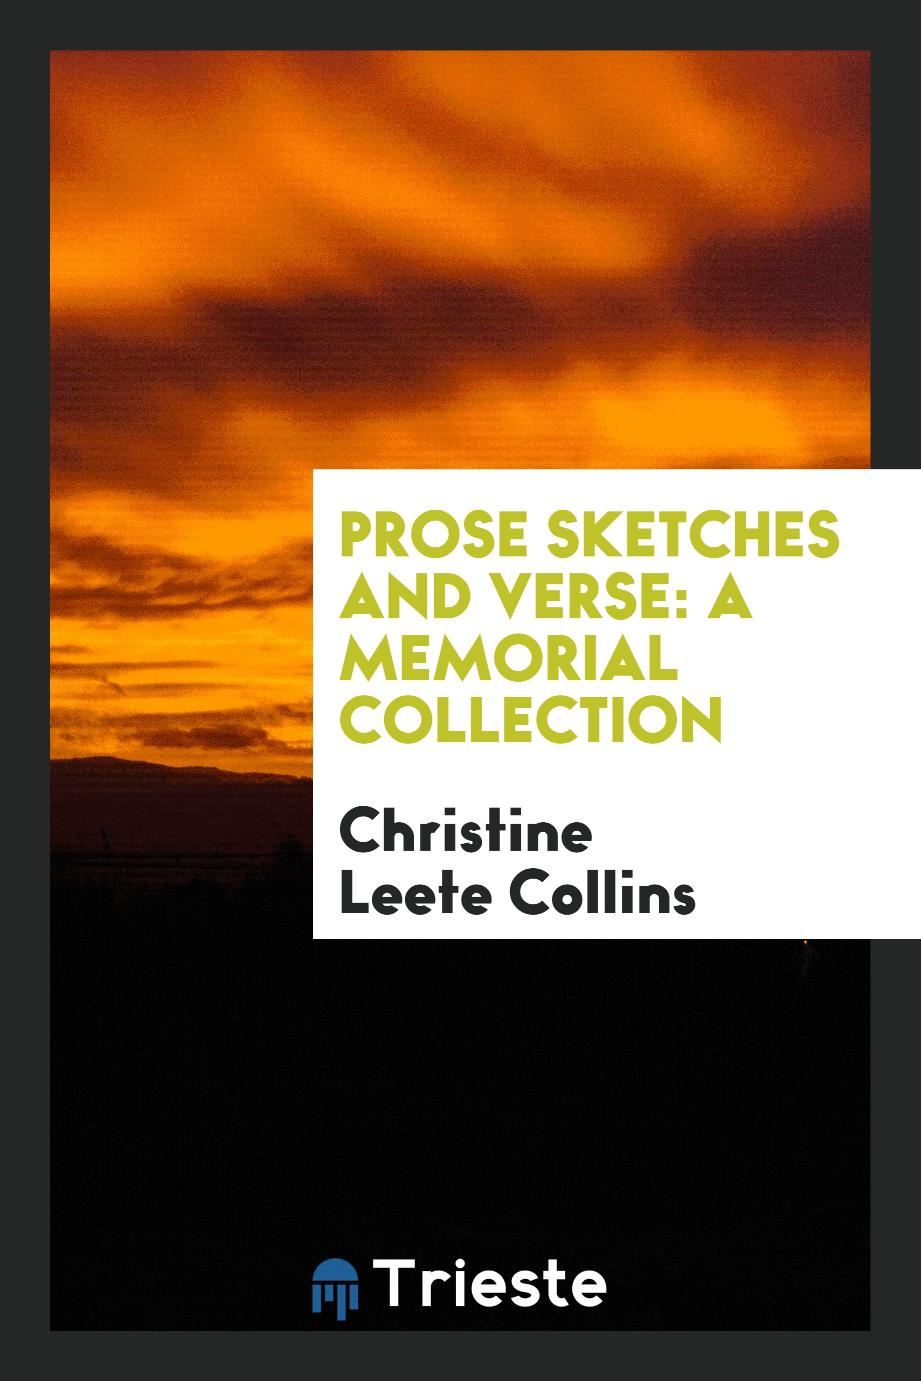 Prose sketches and verse: a memorial collection